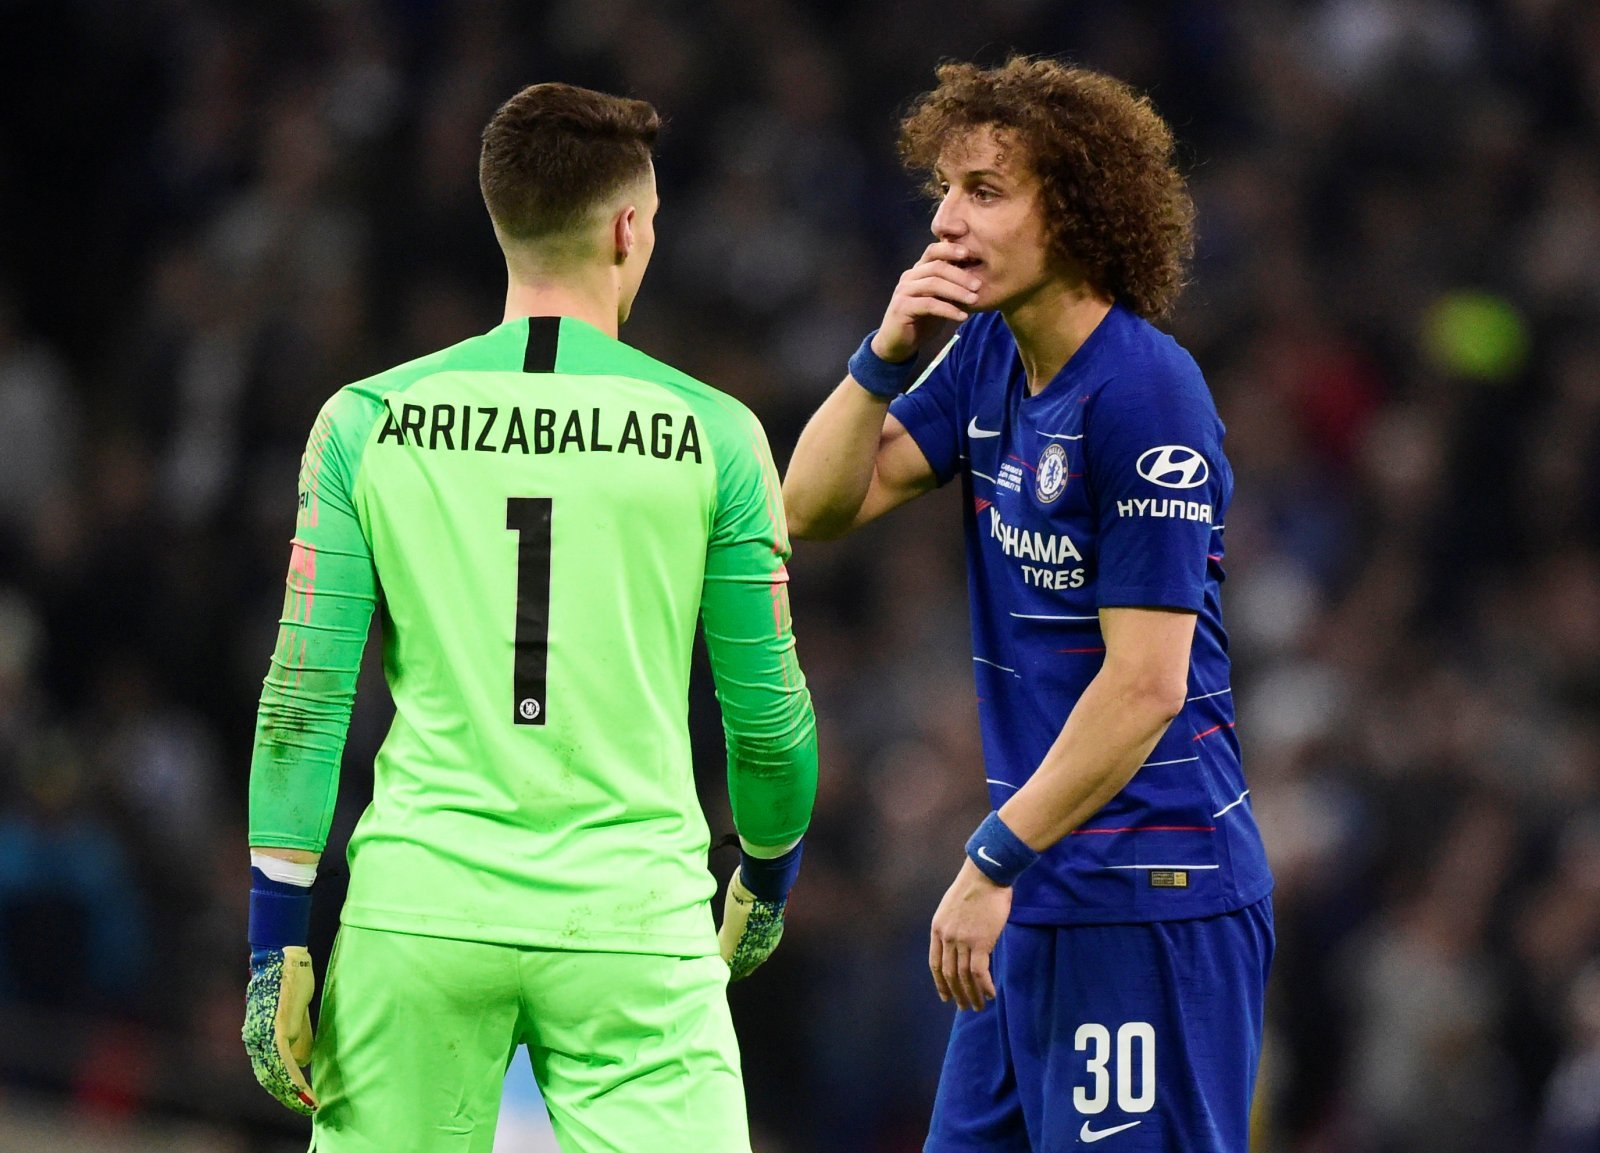 Kepa incident outlines lack of leaders in Chelsea dressing room